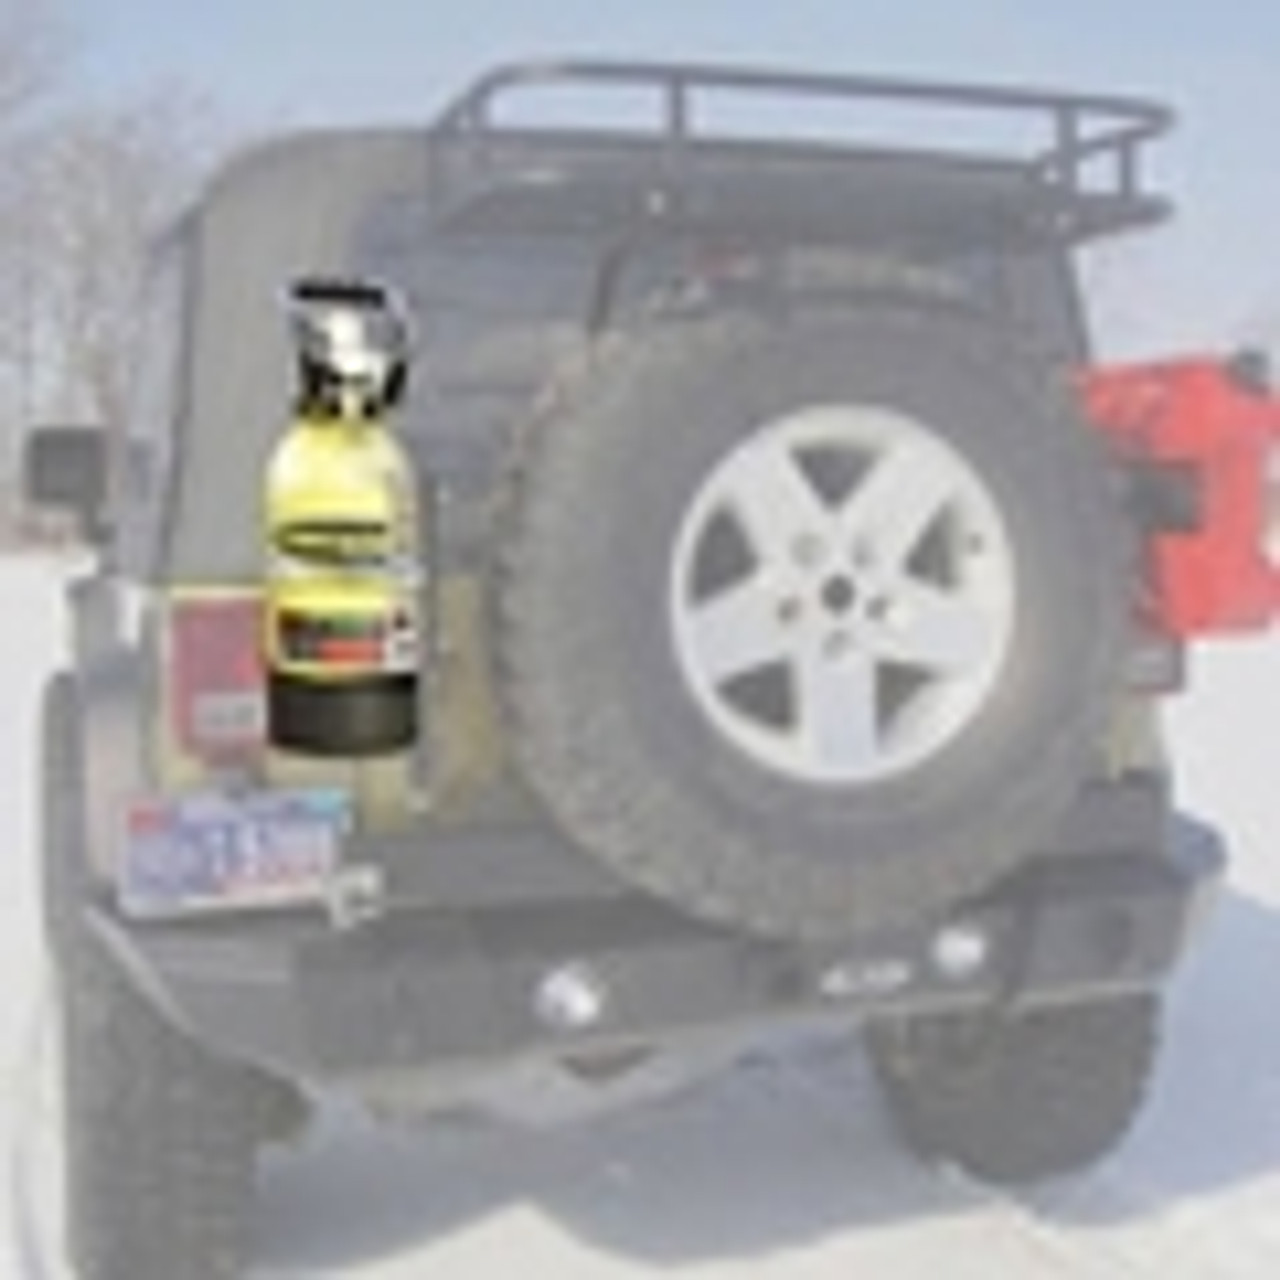 Jerry Cans and Mounts